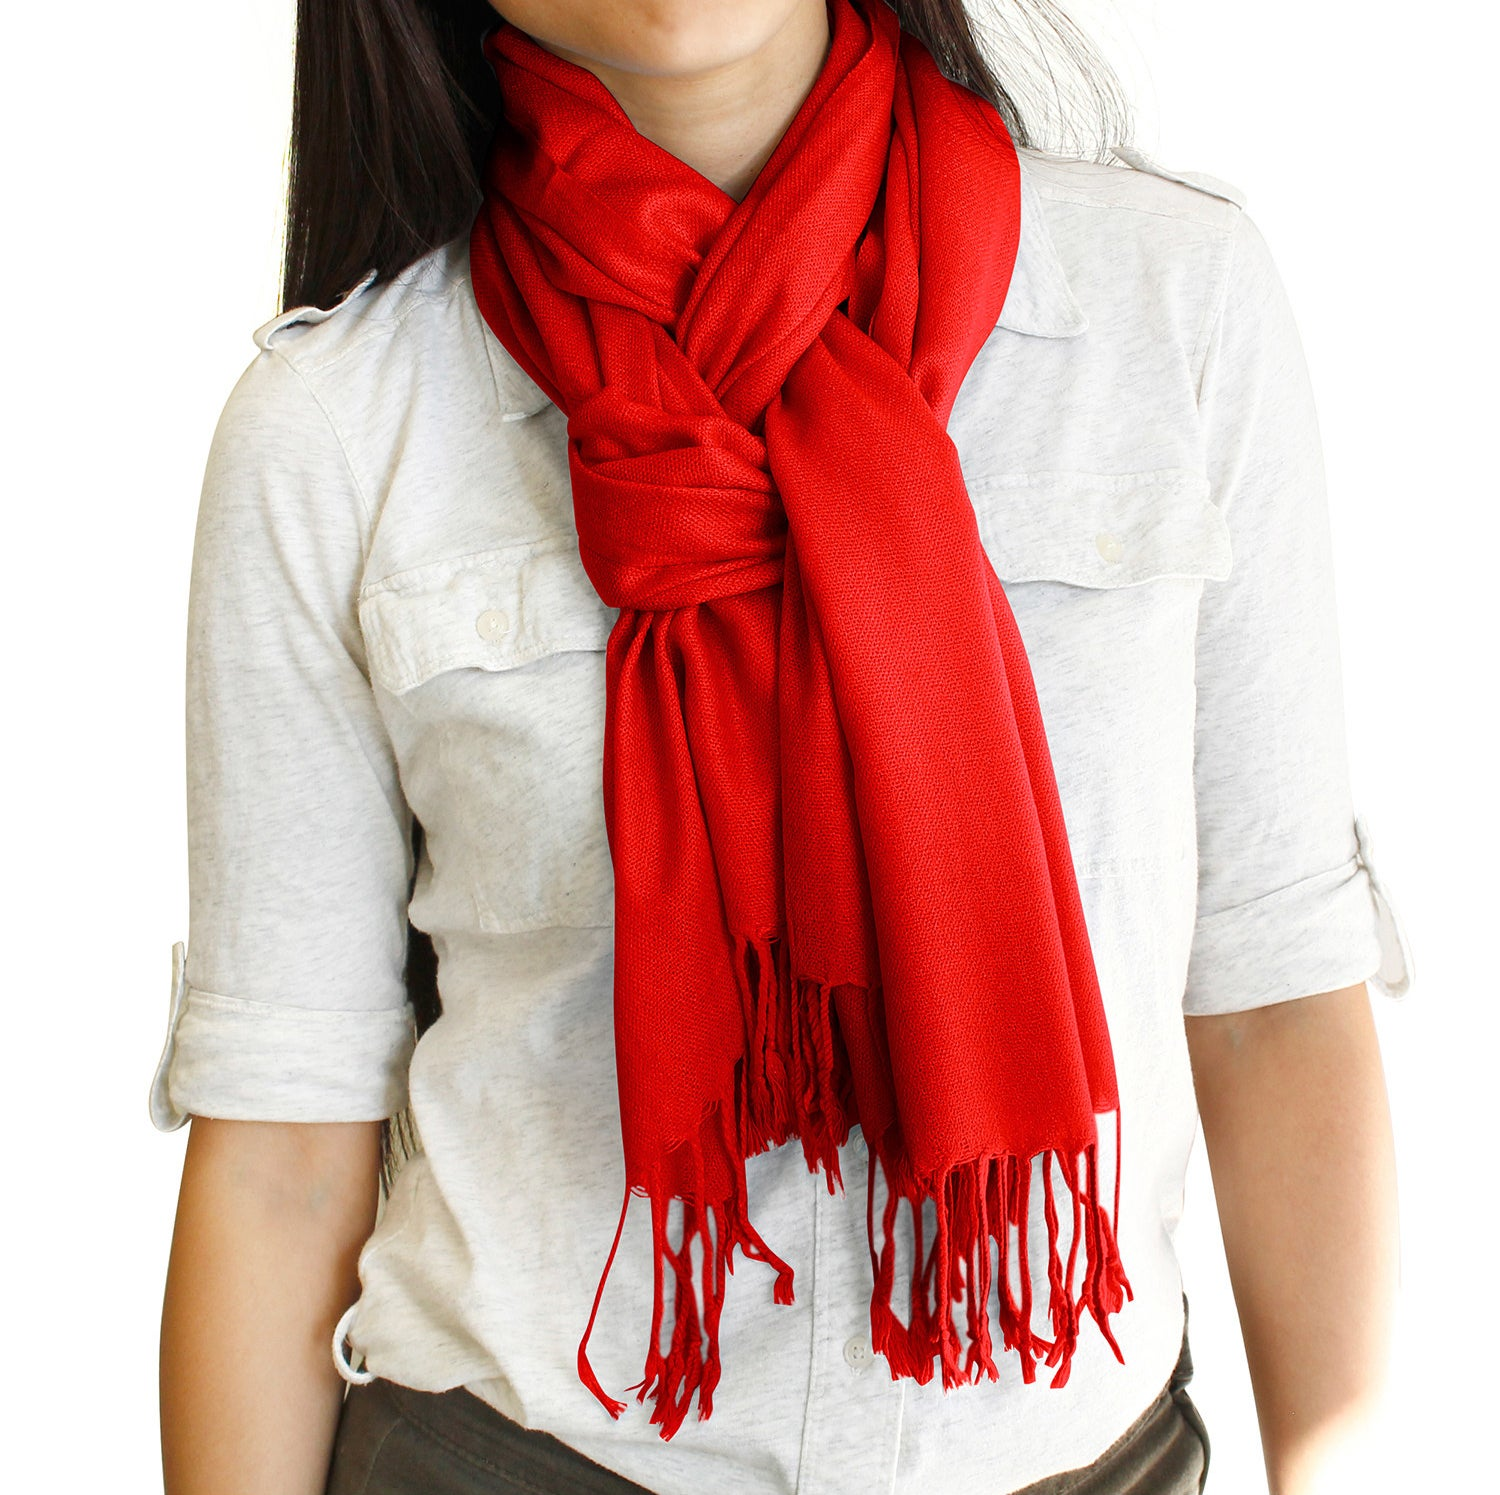 Model wearing a bright red scarf